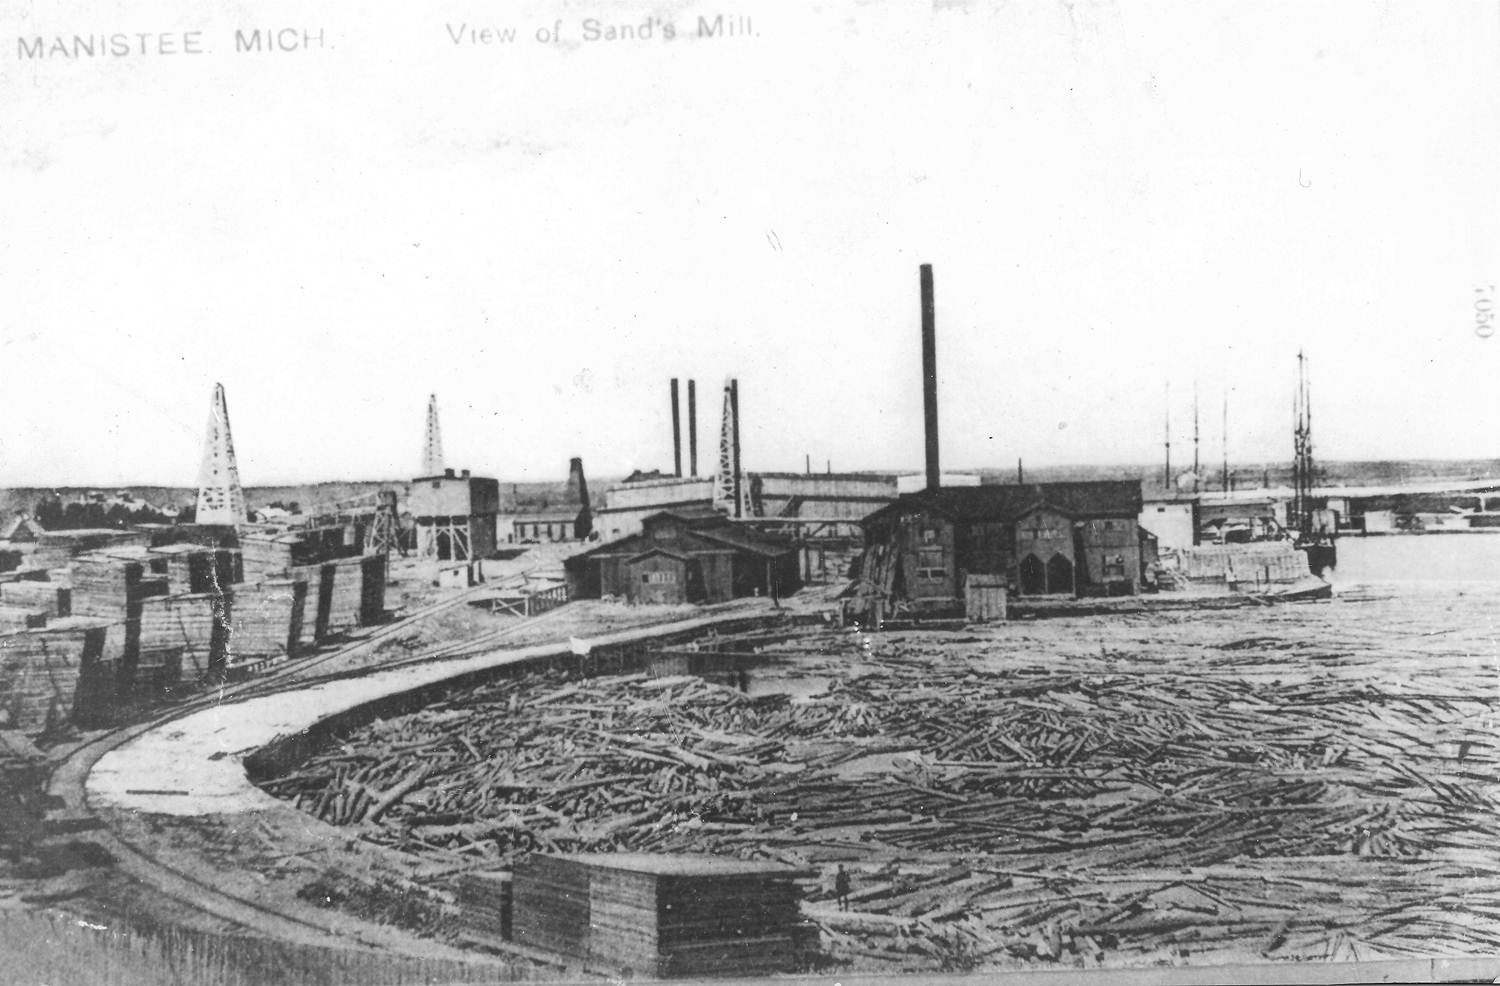 Historical Photo of the Lumber Mills as seen on Manistee Lake with logs in the water and buildings all around